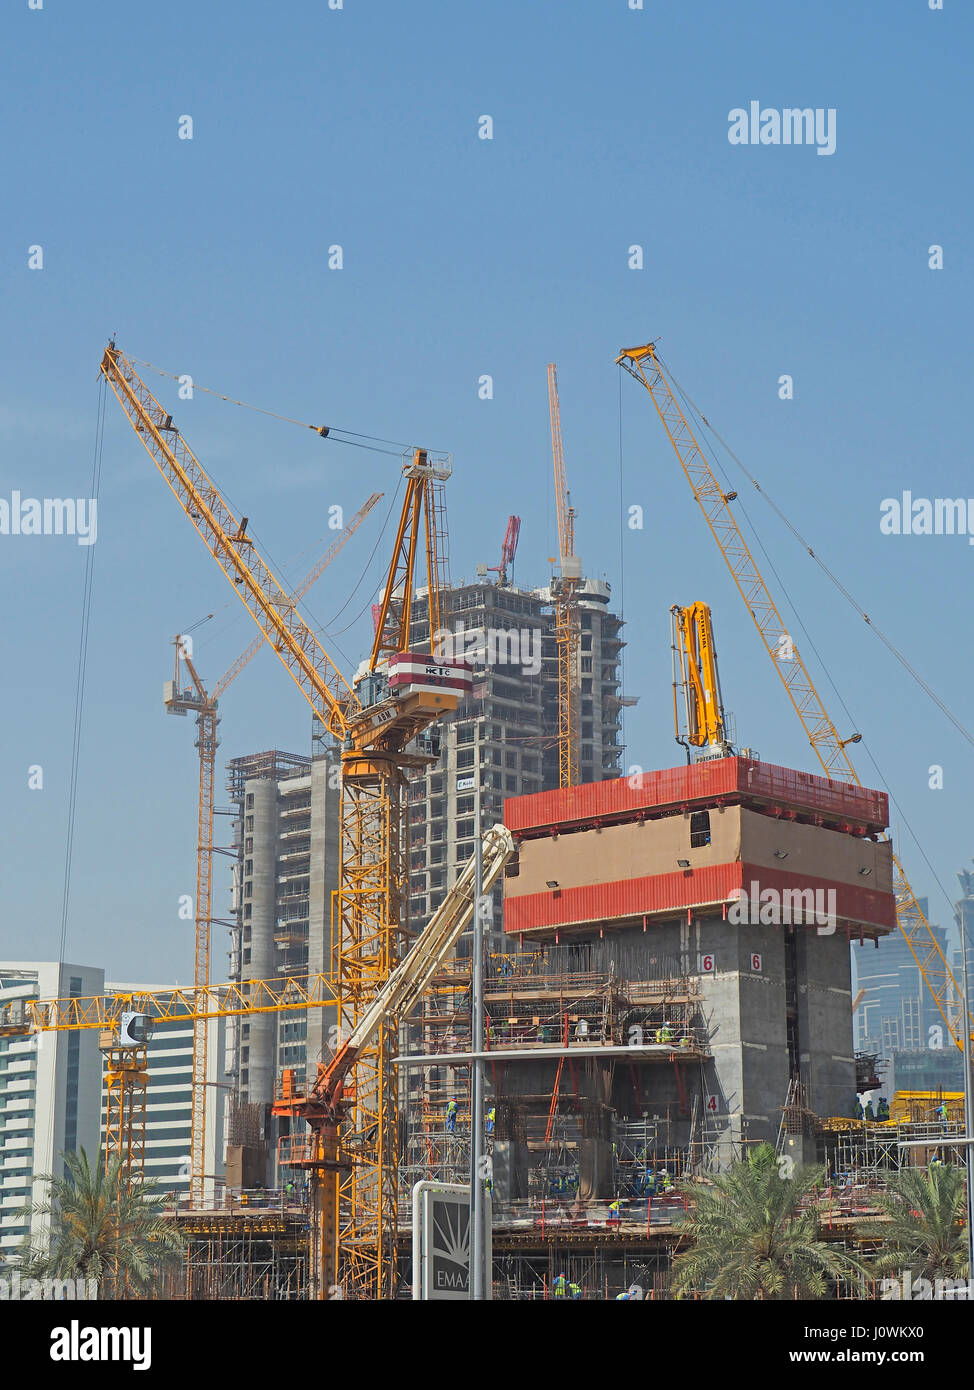 Partout en cours de construction à Dubaï, Émirats arabes unis. Photo Stock